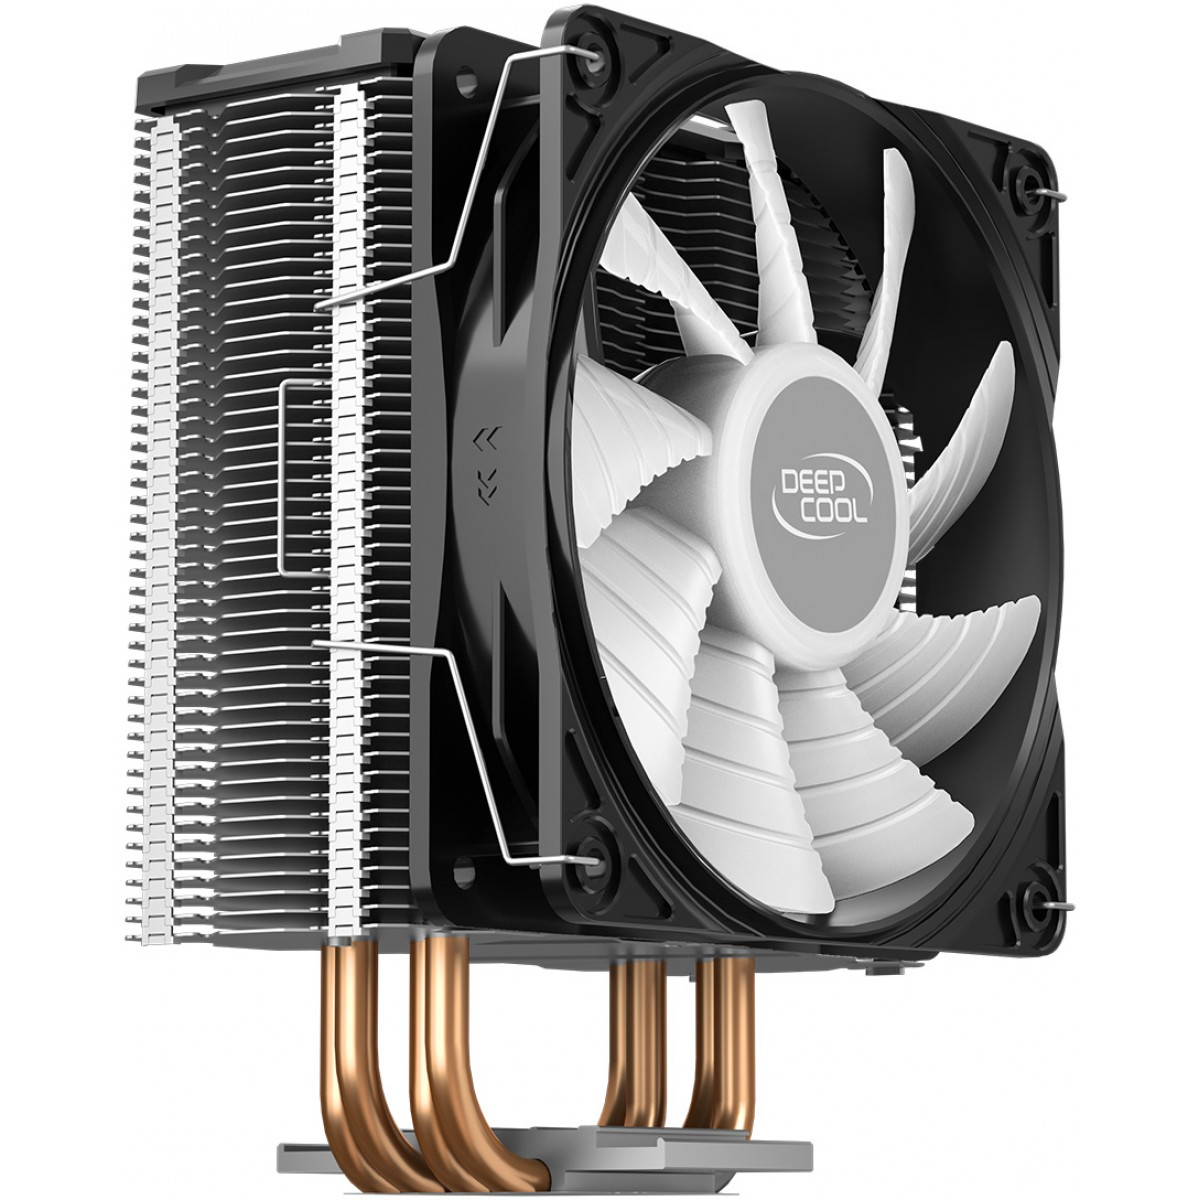 Cooler DeepCool Gammax GTE V2 RGB, 120mm, Intel-AMD